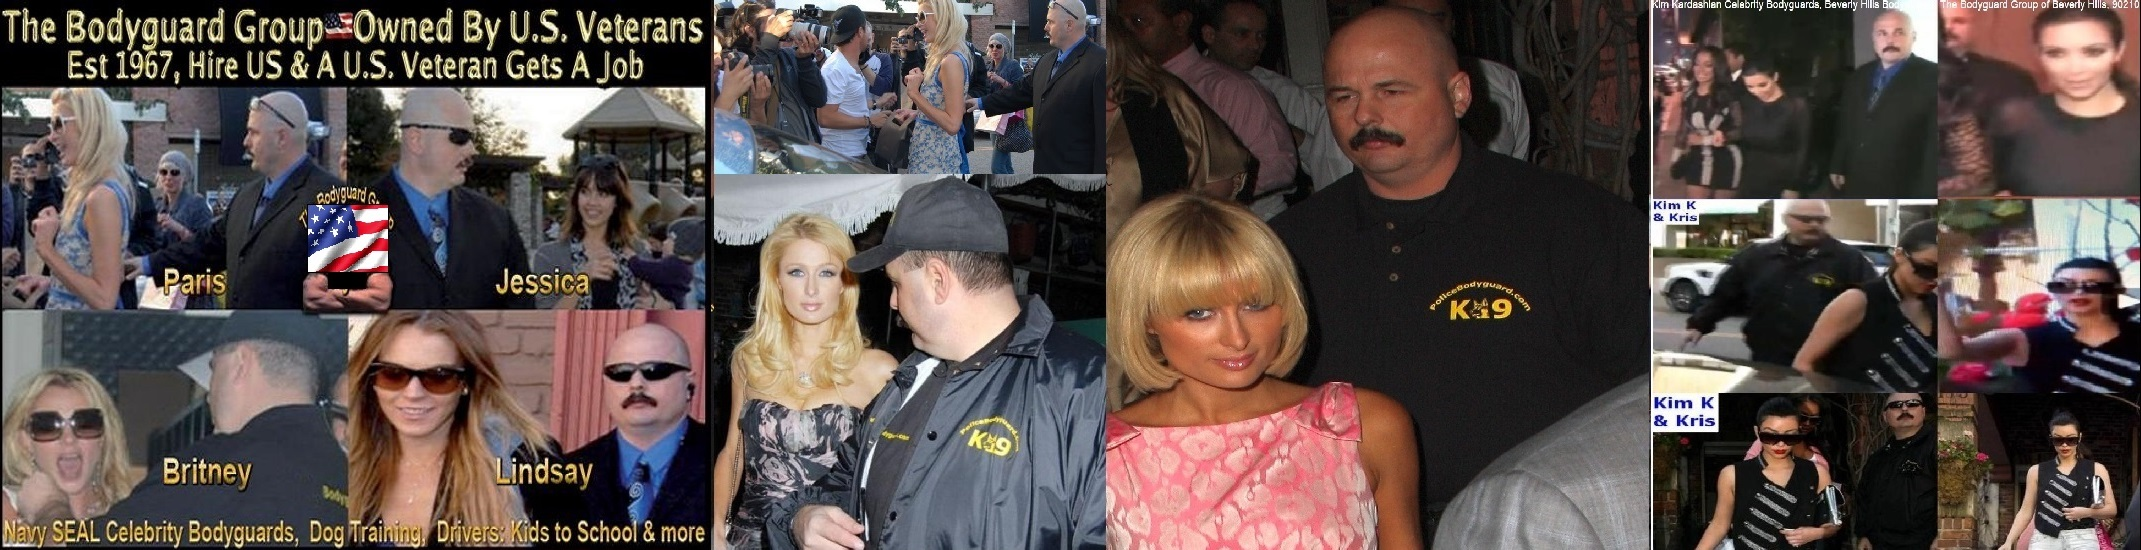 Kim Kardashian Paris Hilton Celebrity Bodyguards for hire Kris Herzog of The Bodyguard Group of Beverly Hills 90210